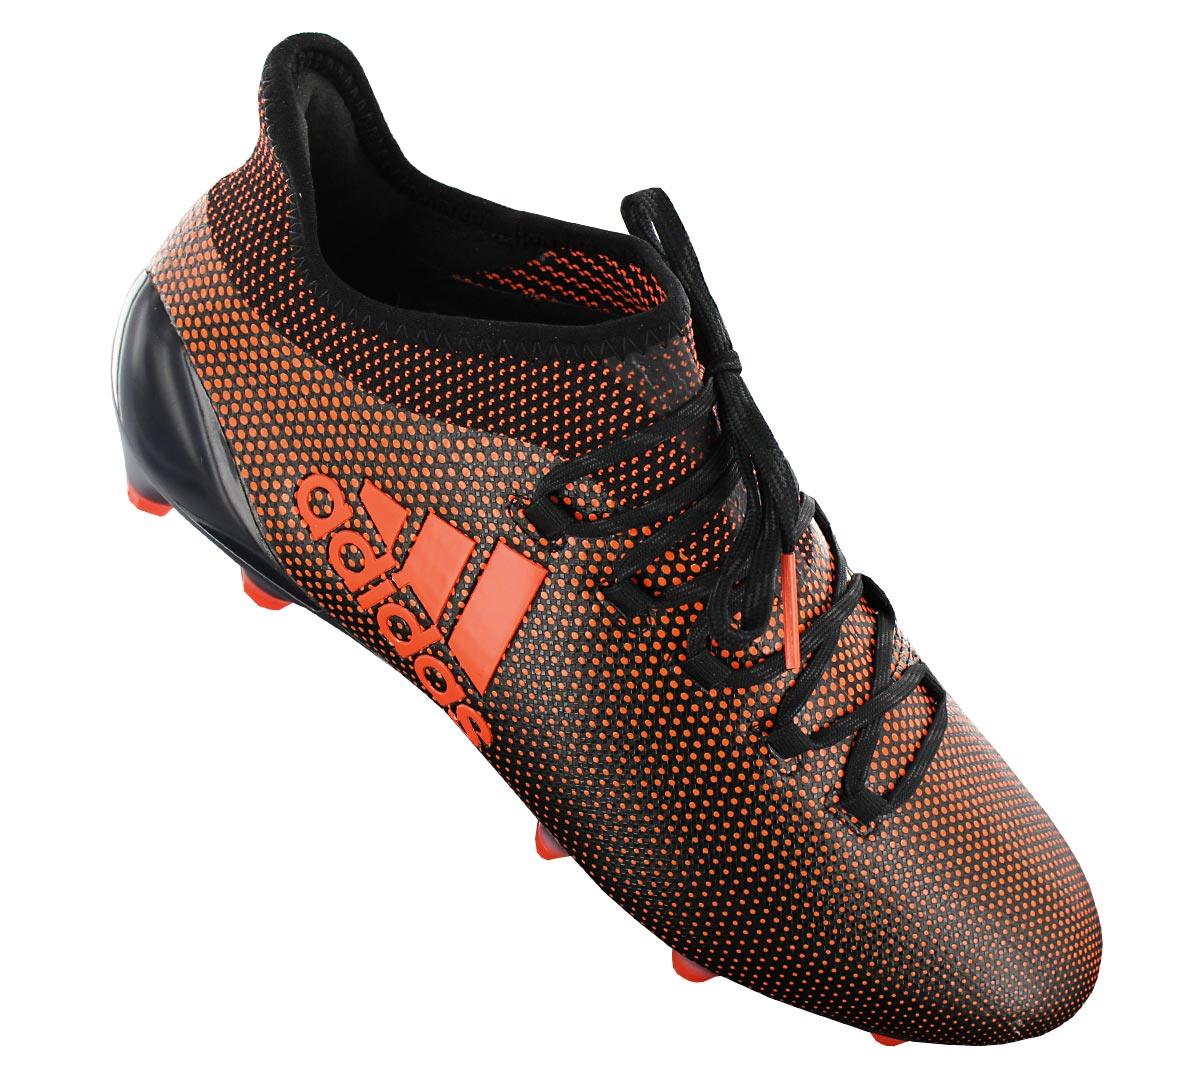 detailed look 4bcf9 4306f Details about Adidas x 17.1 Fg Men's Cleats Football Shoes Black Orange Ace  S82288 New